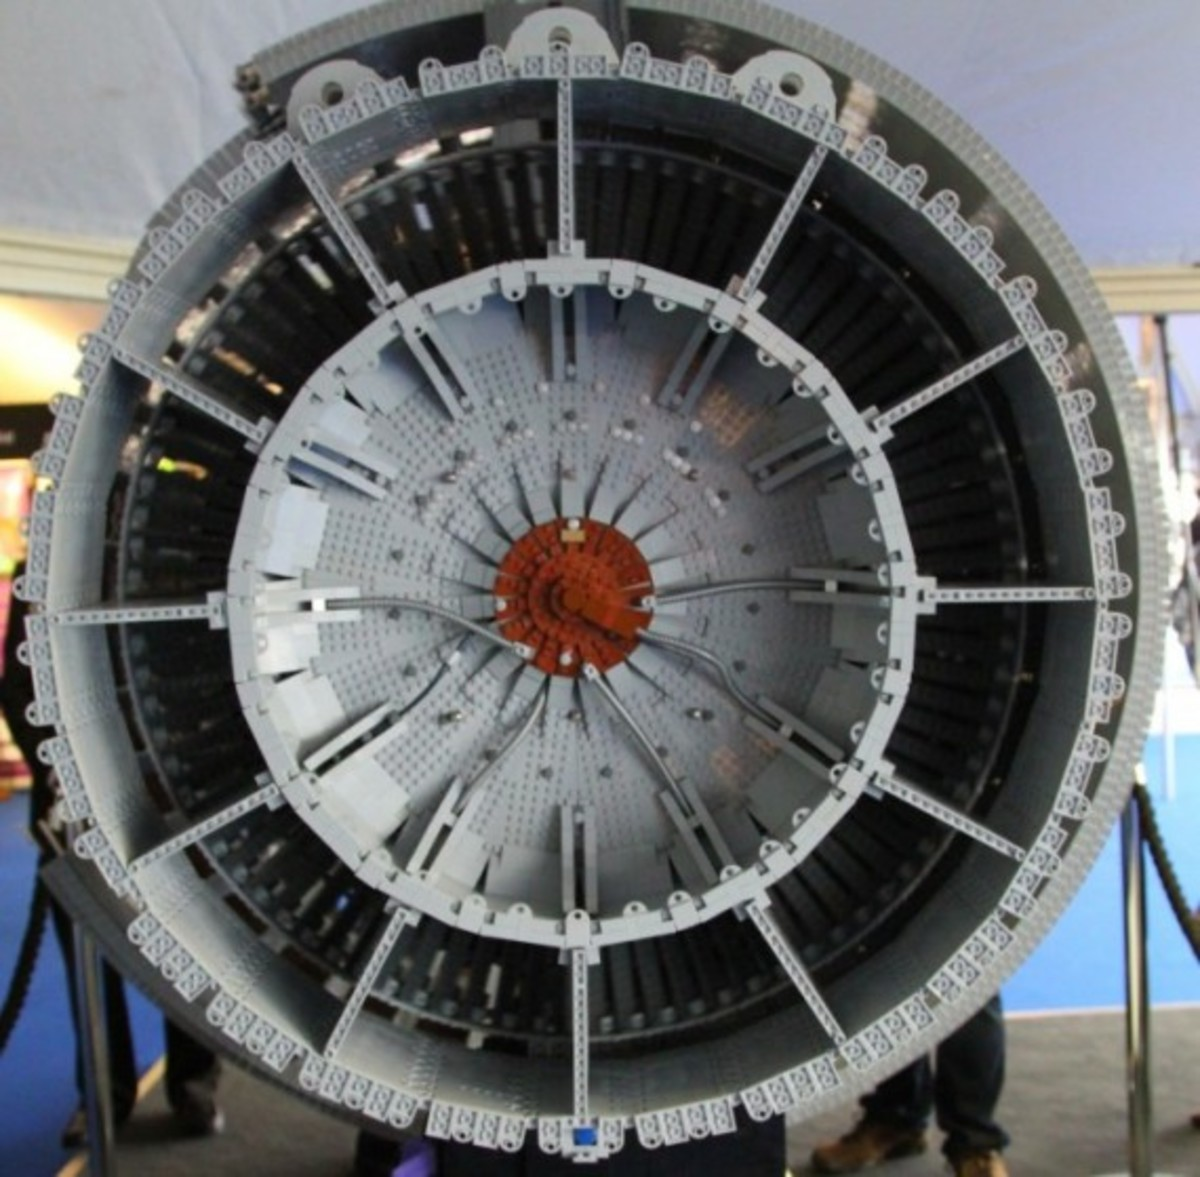 rolls-royce-lego-jet-engine-16